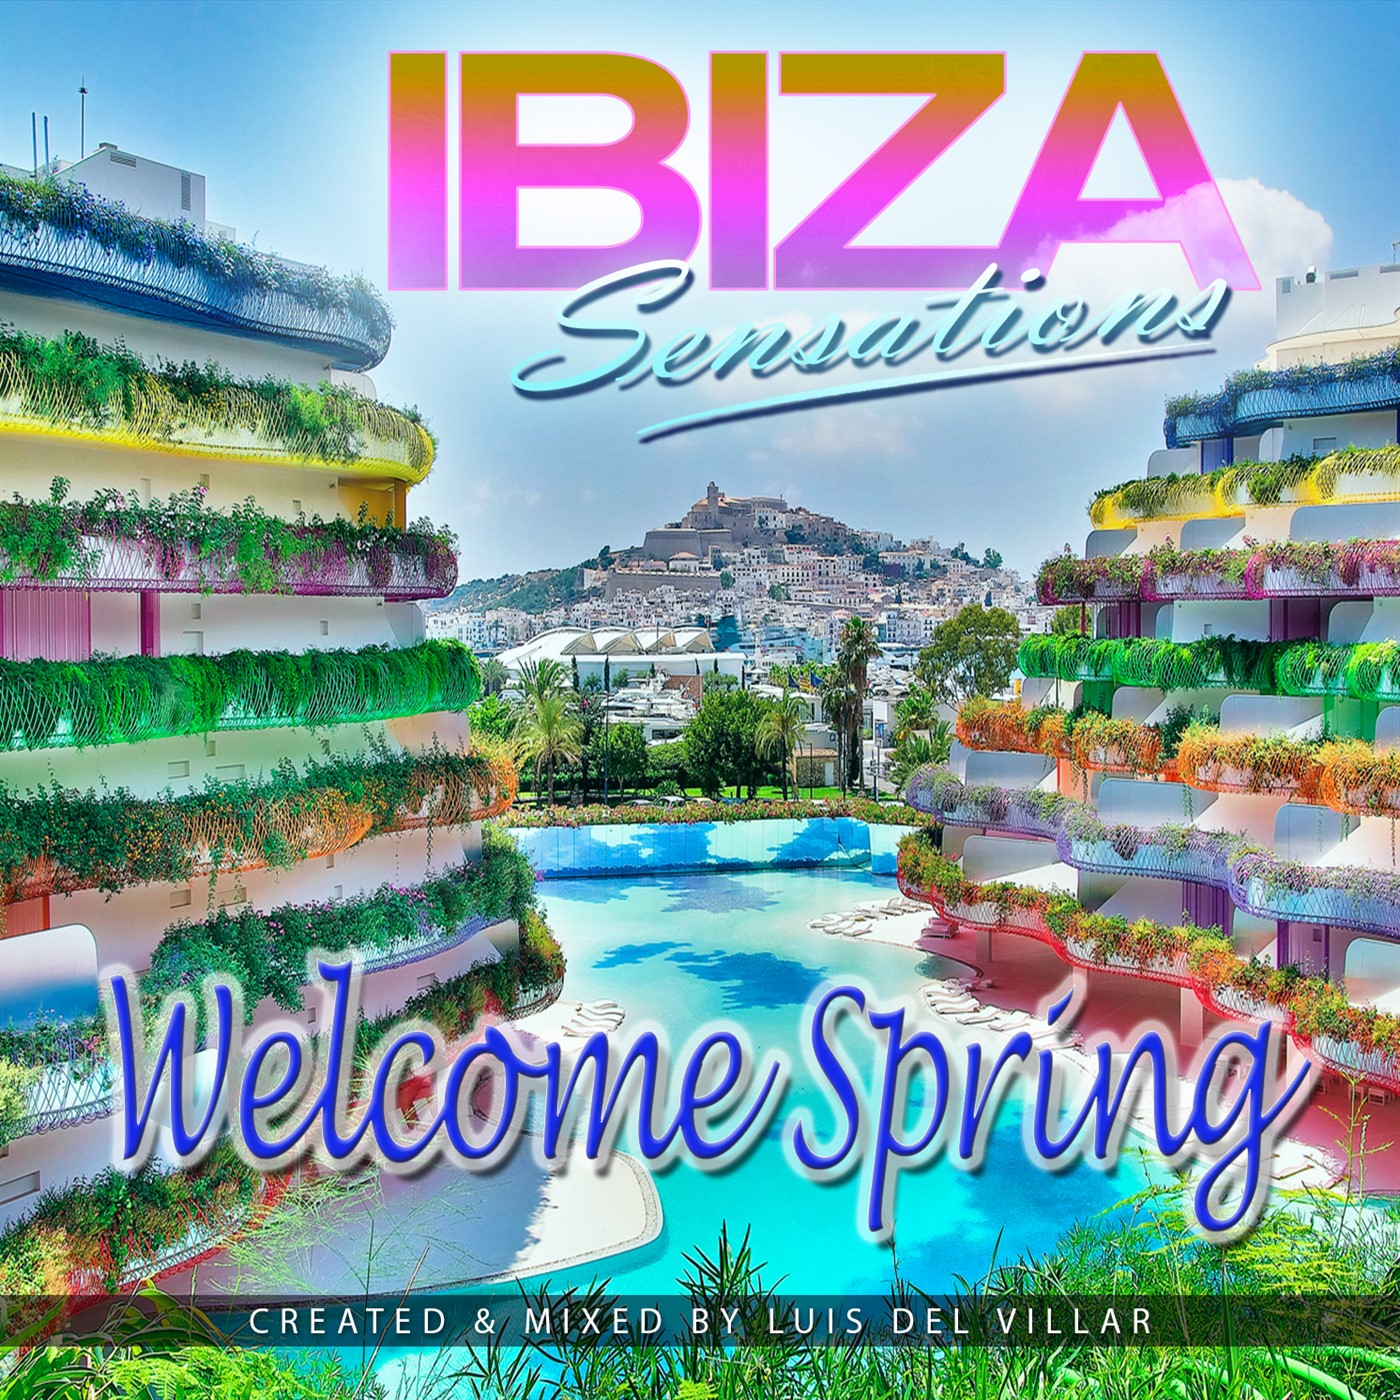 Ibiza Sensations 211 Special Welcome Spring 2h set